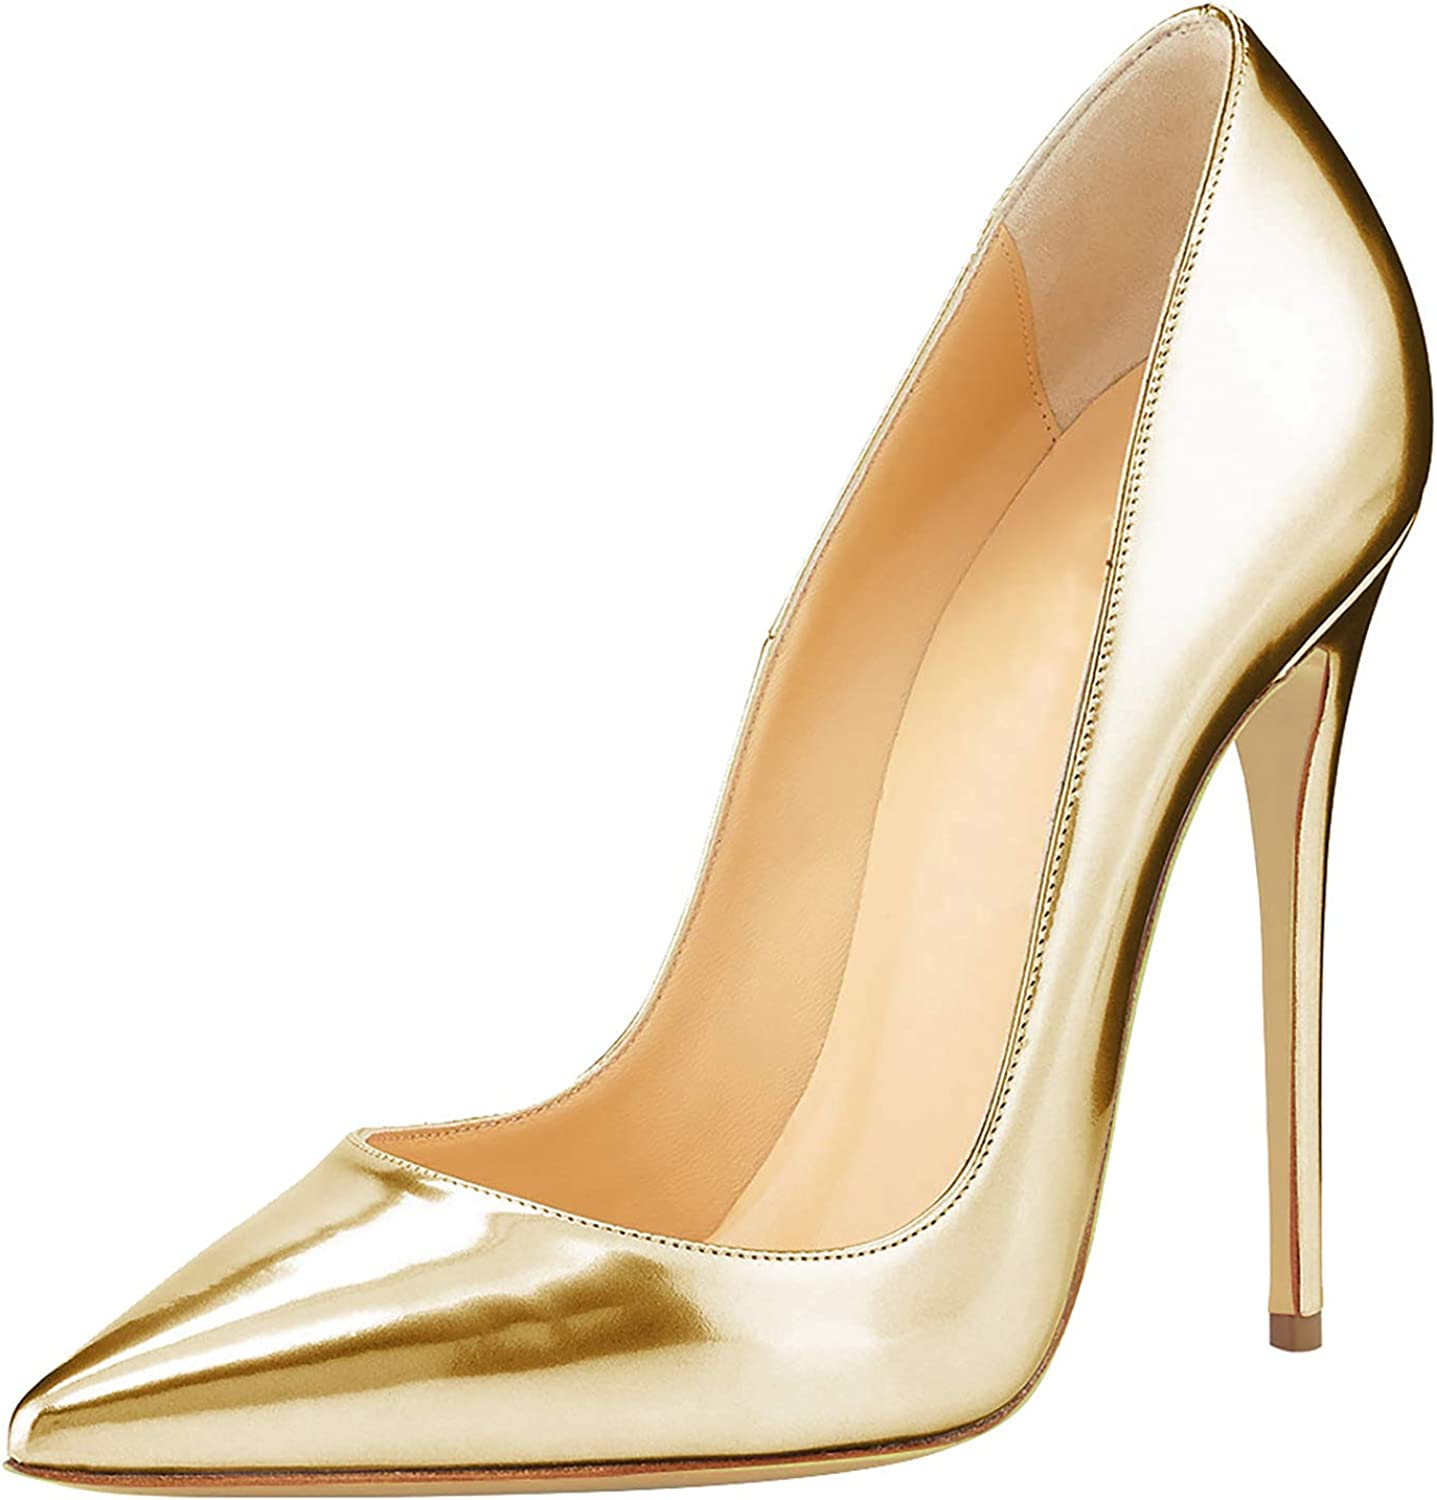 HEETIST Women's Sexy Pointed Closed Toe Stiletto High Heels Dress Pumps shoes Slip On Size 4-12 US